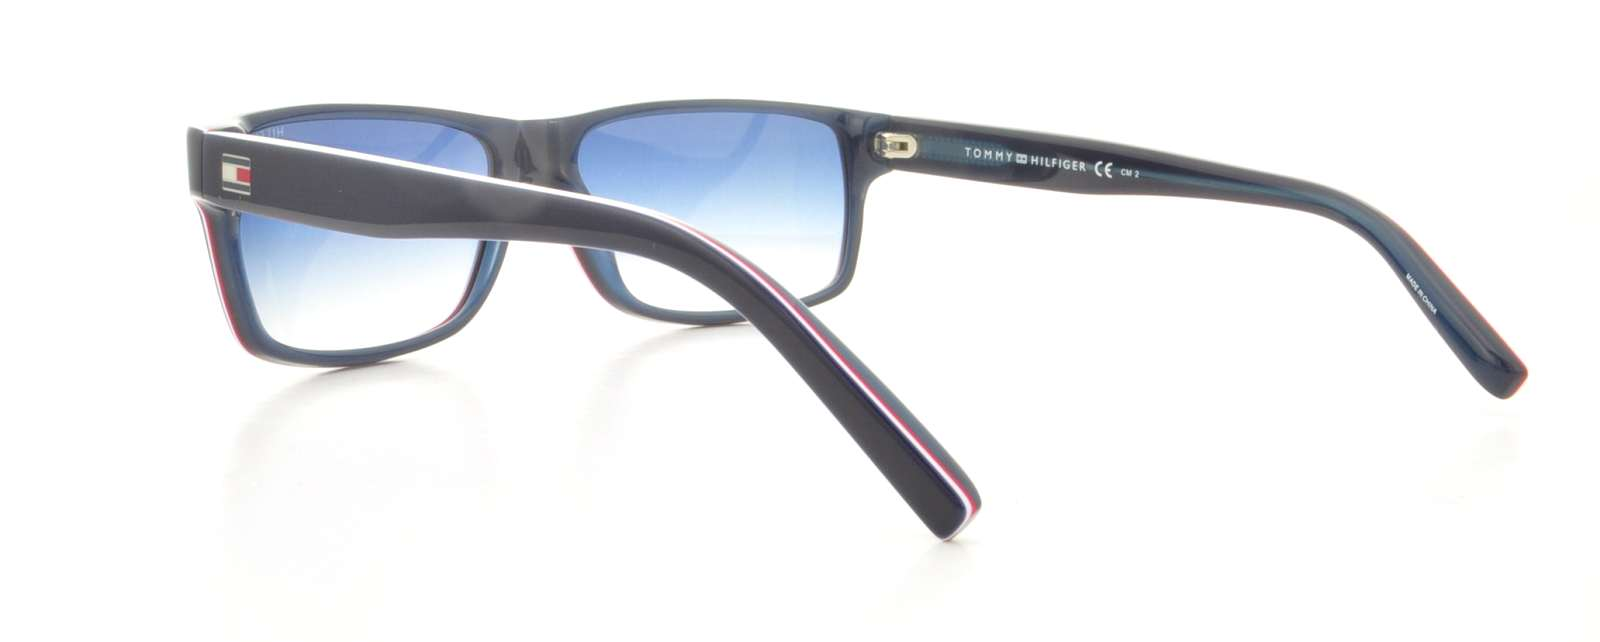 bc47f66c7c7 TOMMY HILFIGER Sunglasses 1042 N S 0OIV Blue Red White 57MM ...